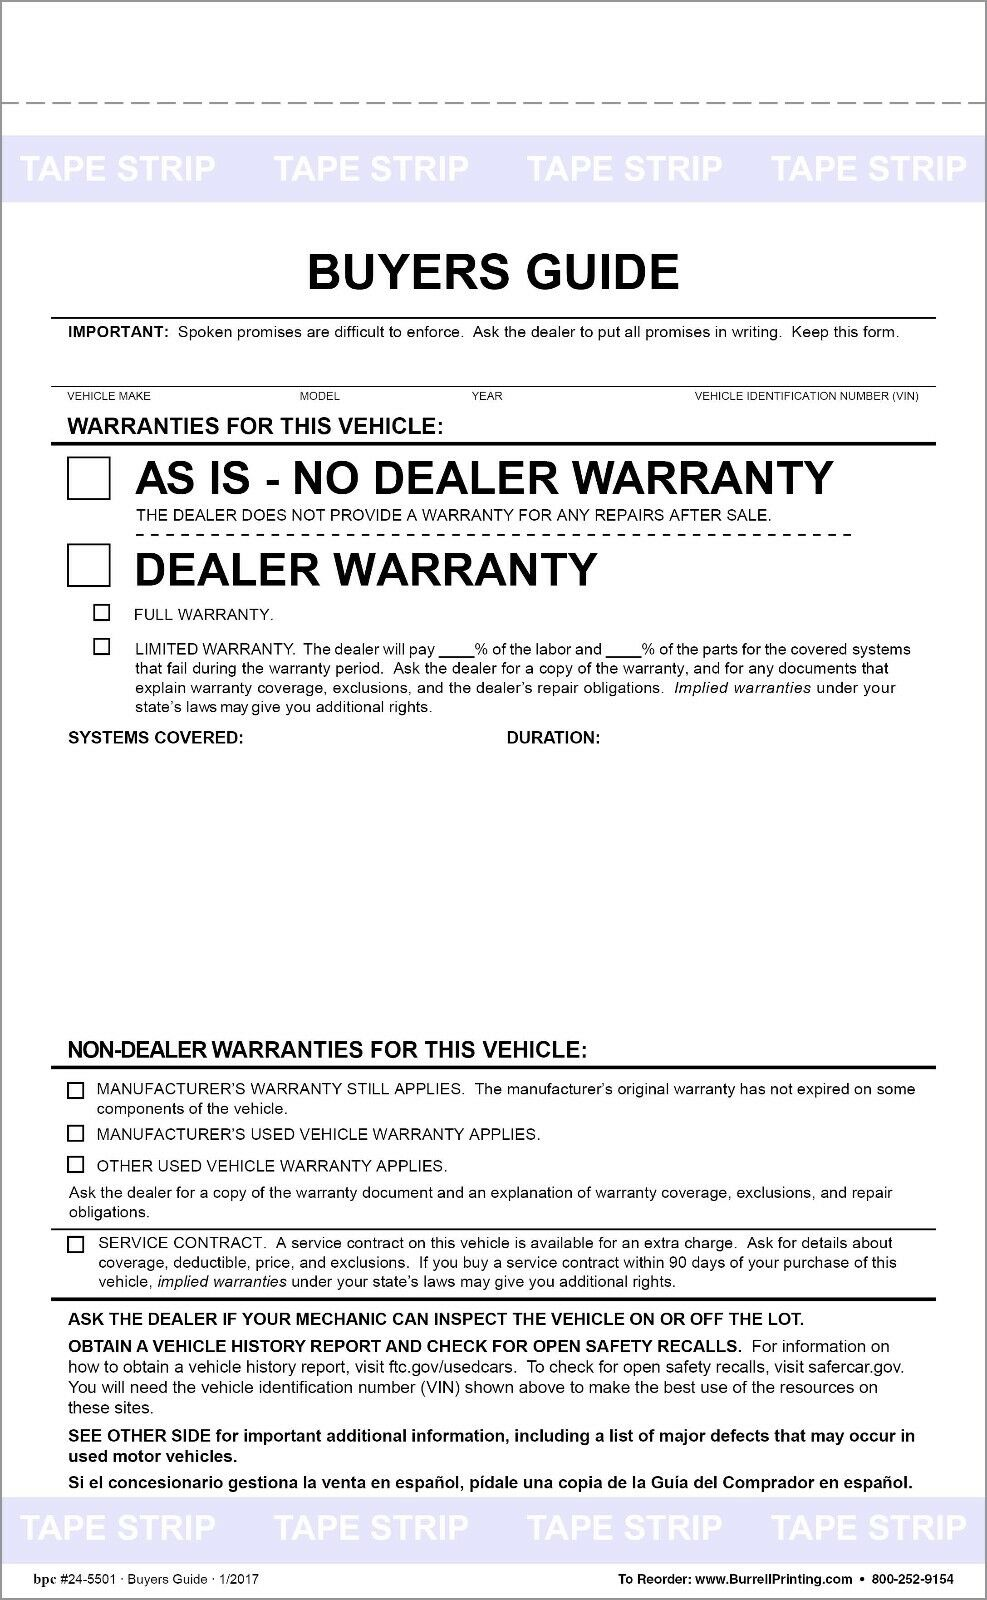 federal buyers guide as is no warranty form pack of 100 18 23 rh picclick com As Is No Warranty Form Sold as Is Form Printable